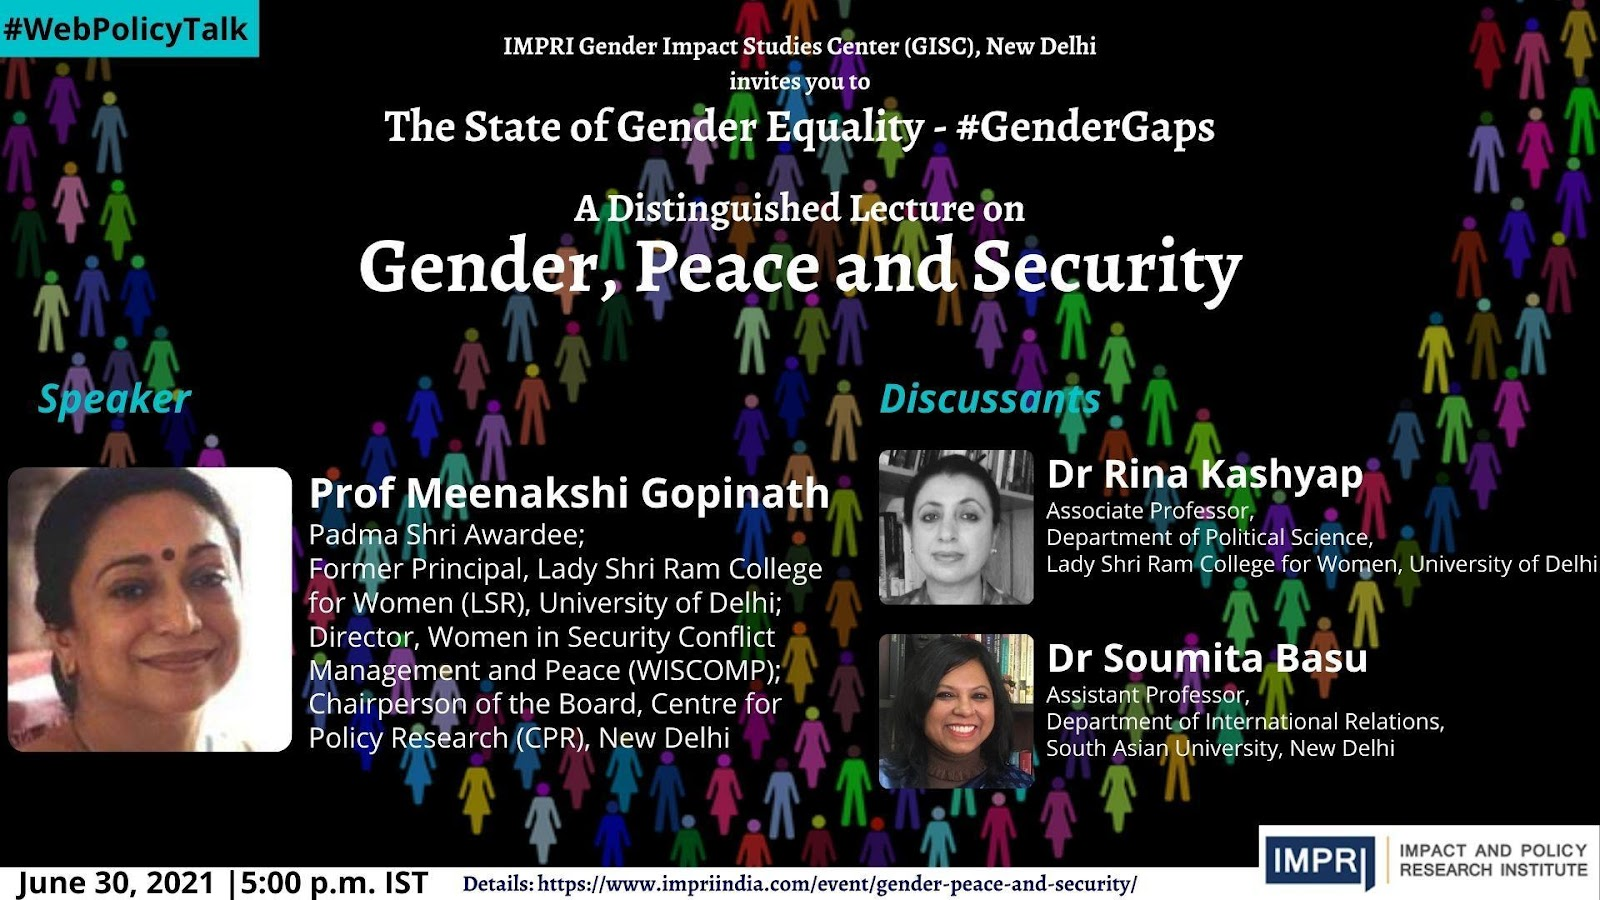 https://www.impriindia.com/wp-content/uploads/2021/05/Distinguished-Lecture-Meenakshi-Gopinath-Gender-Peace-and-Security-1.jpg